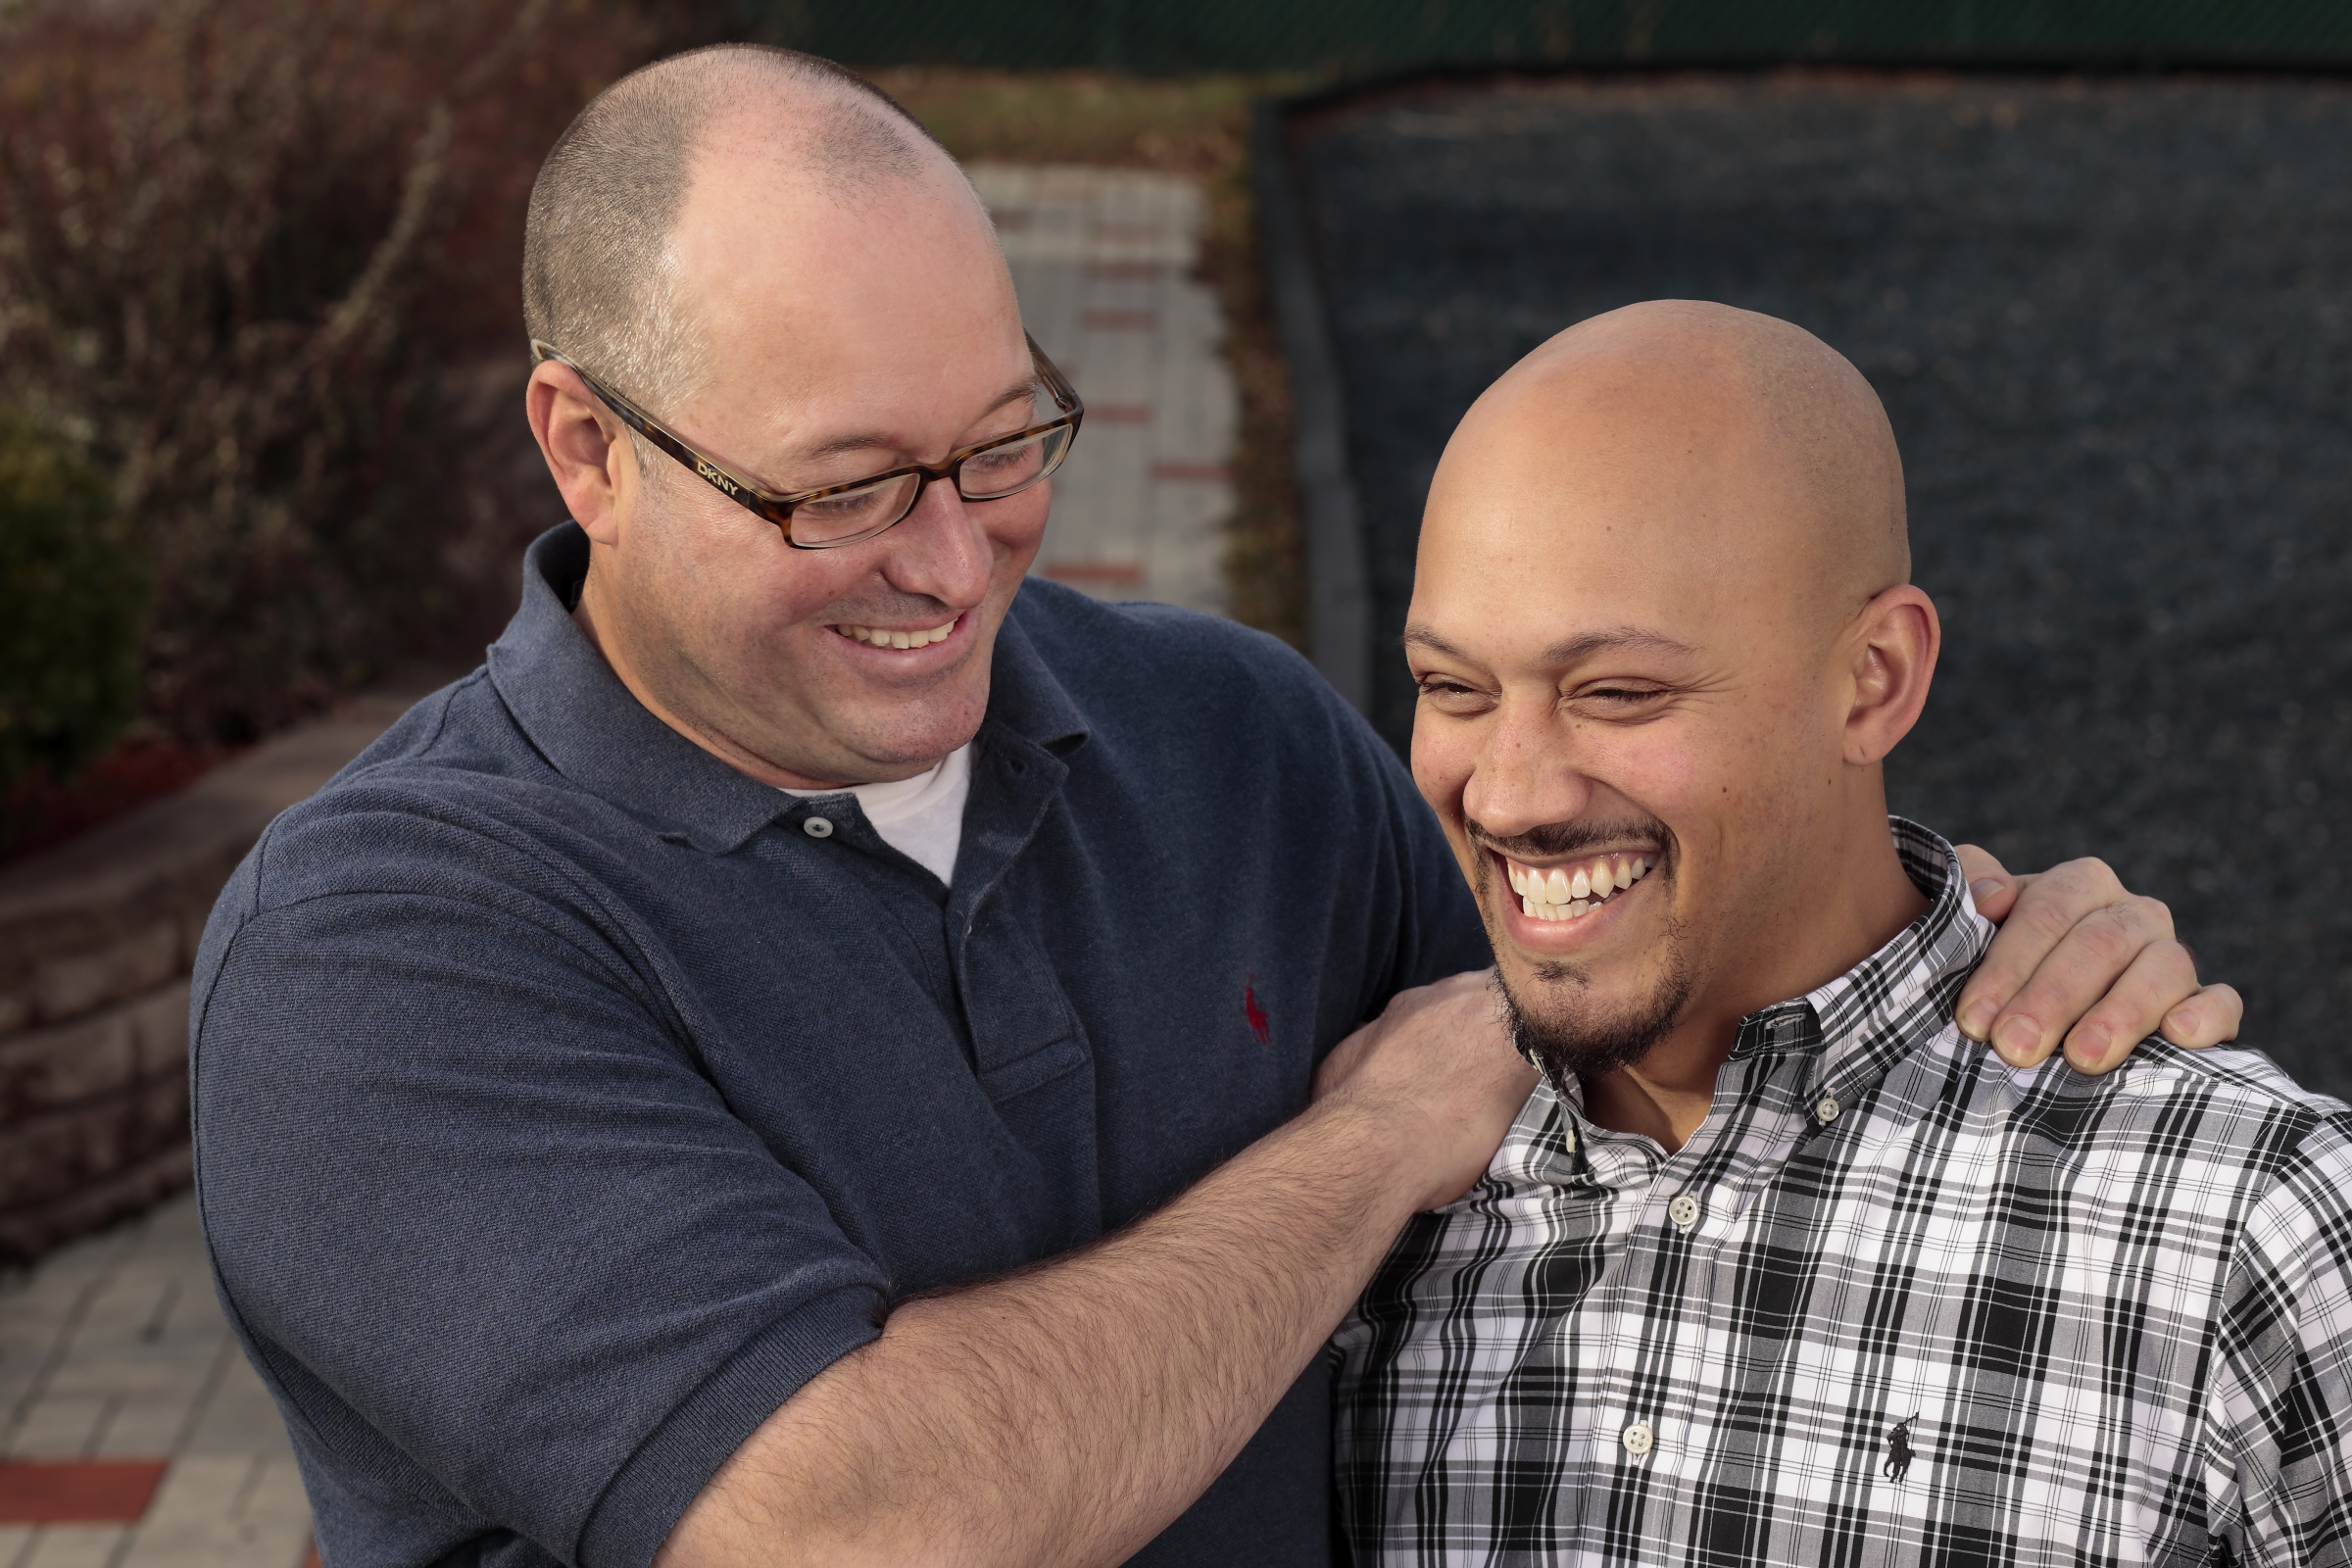 Todd and Rob, two participants in the Healing Place